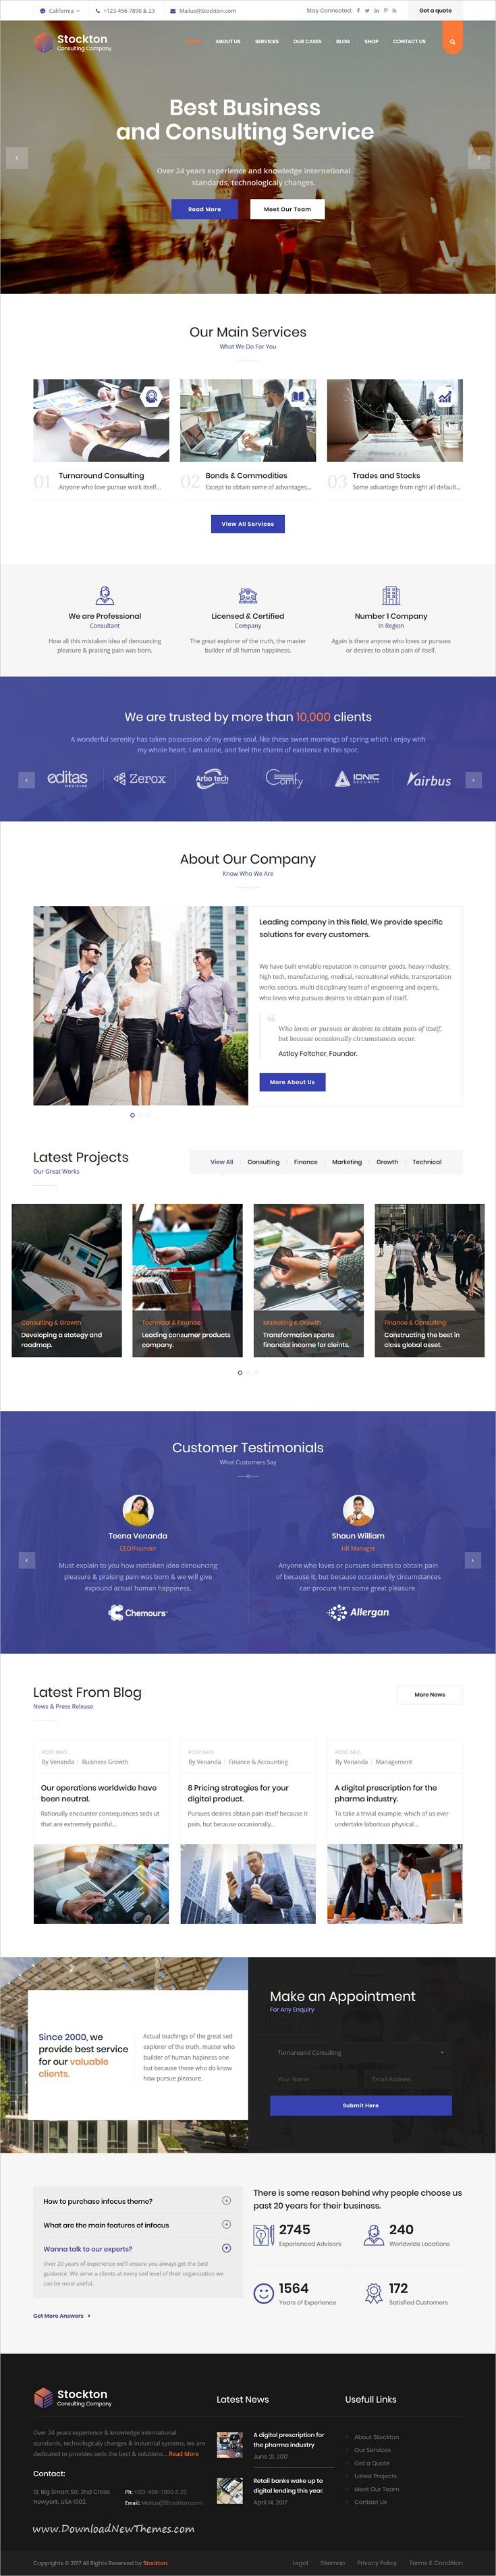 Stockton Is Clean And Modern Design Responsive Html Bootstrap Template For Business Consulting And Professi Consulting Business Legal Services Financial Firm